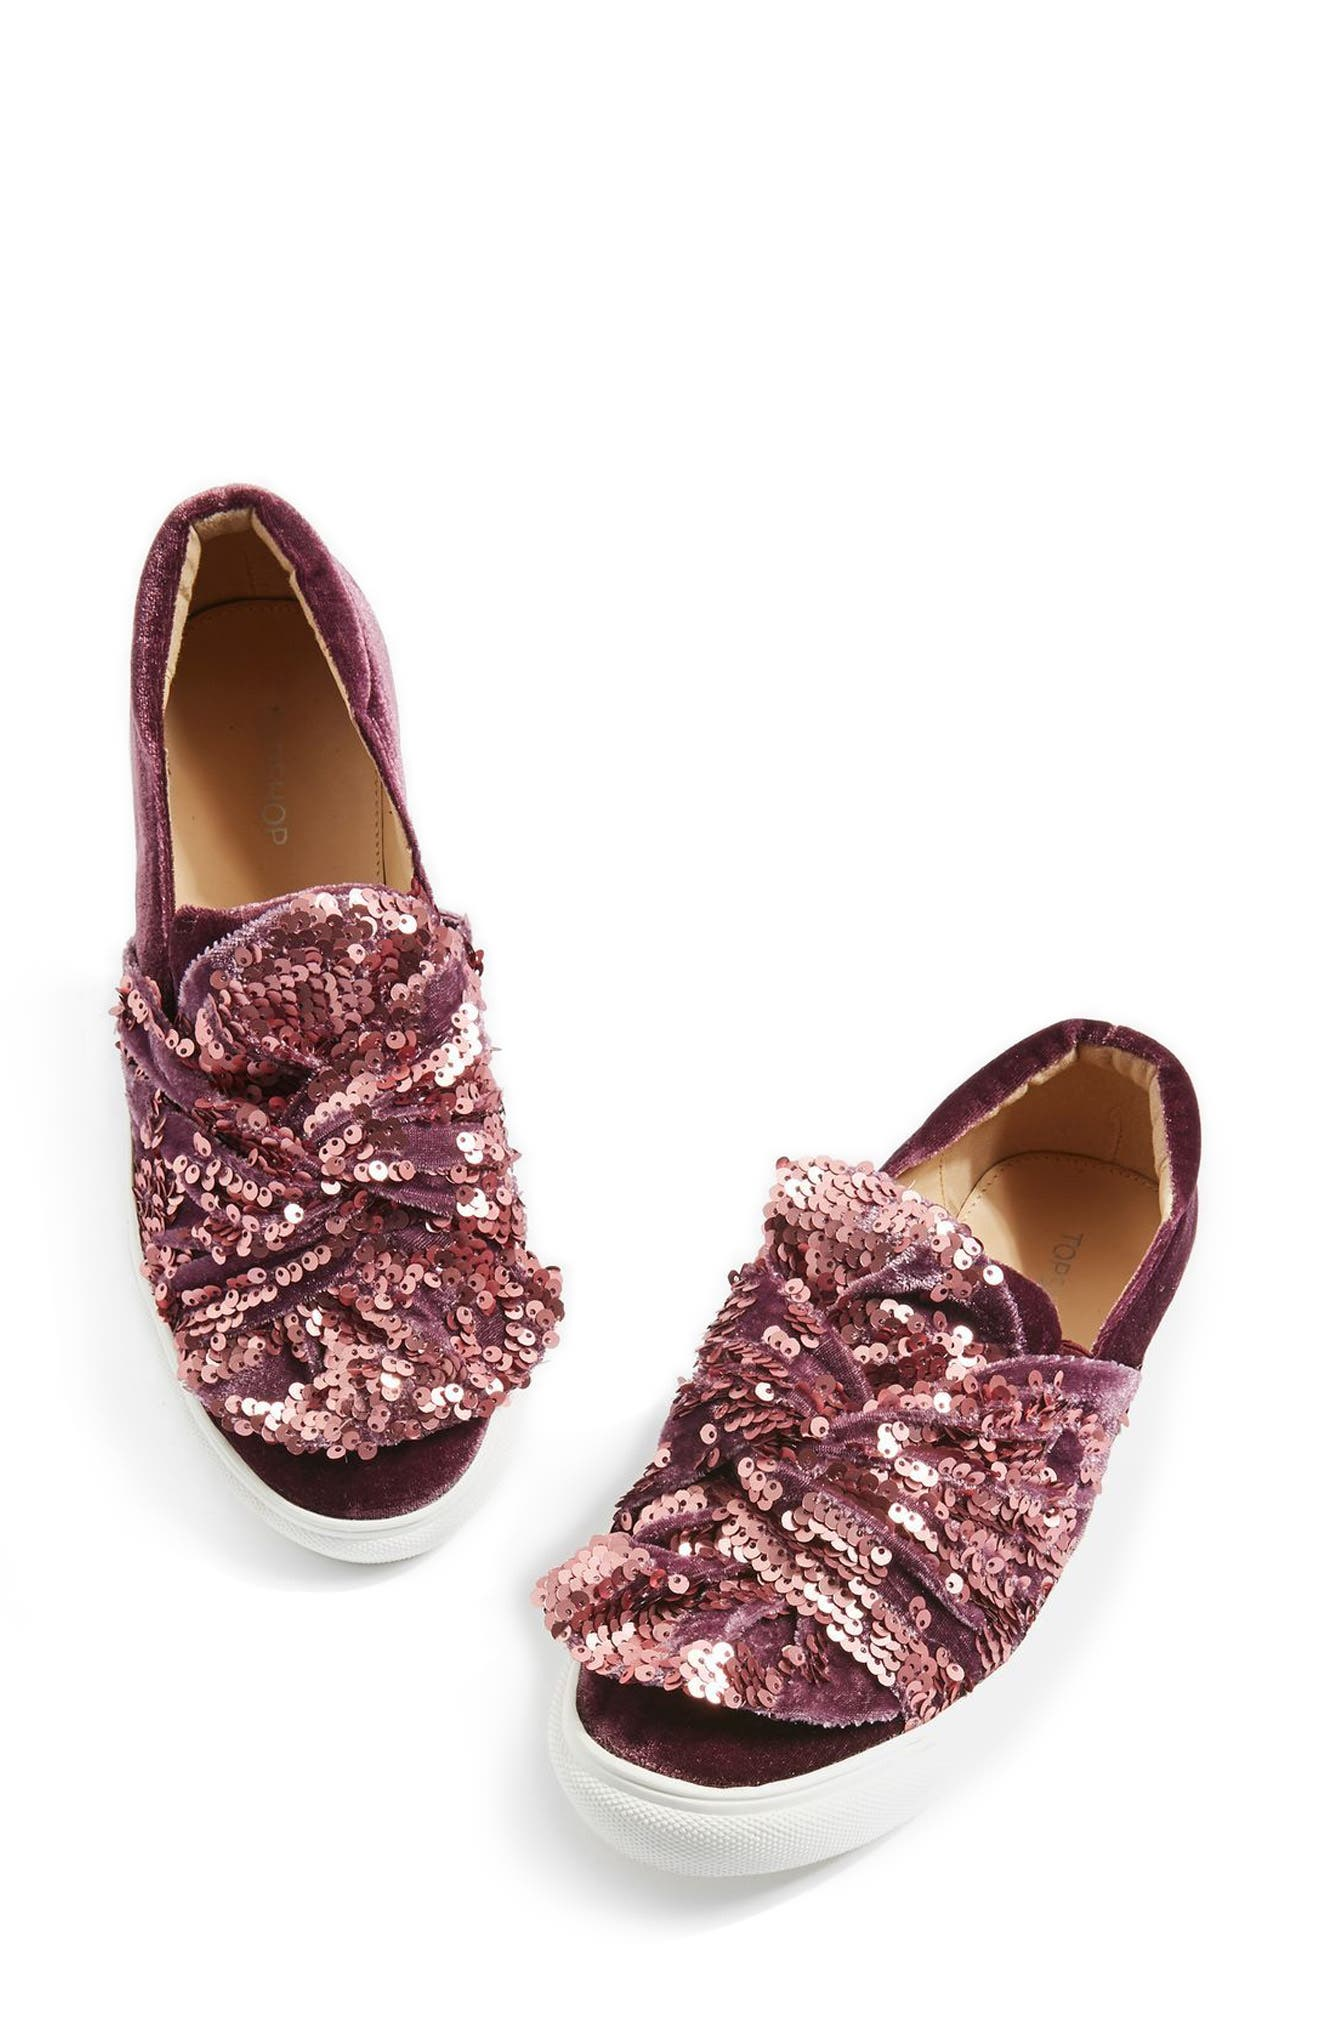 Twisted Sequin Velvet Sneakers,                             Main thumbnail 1, color,                             650